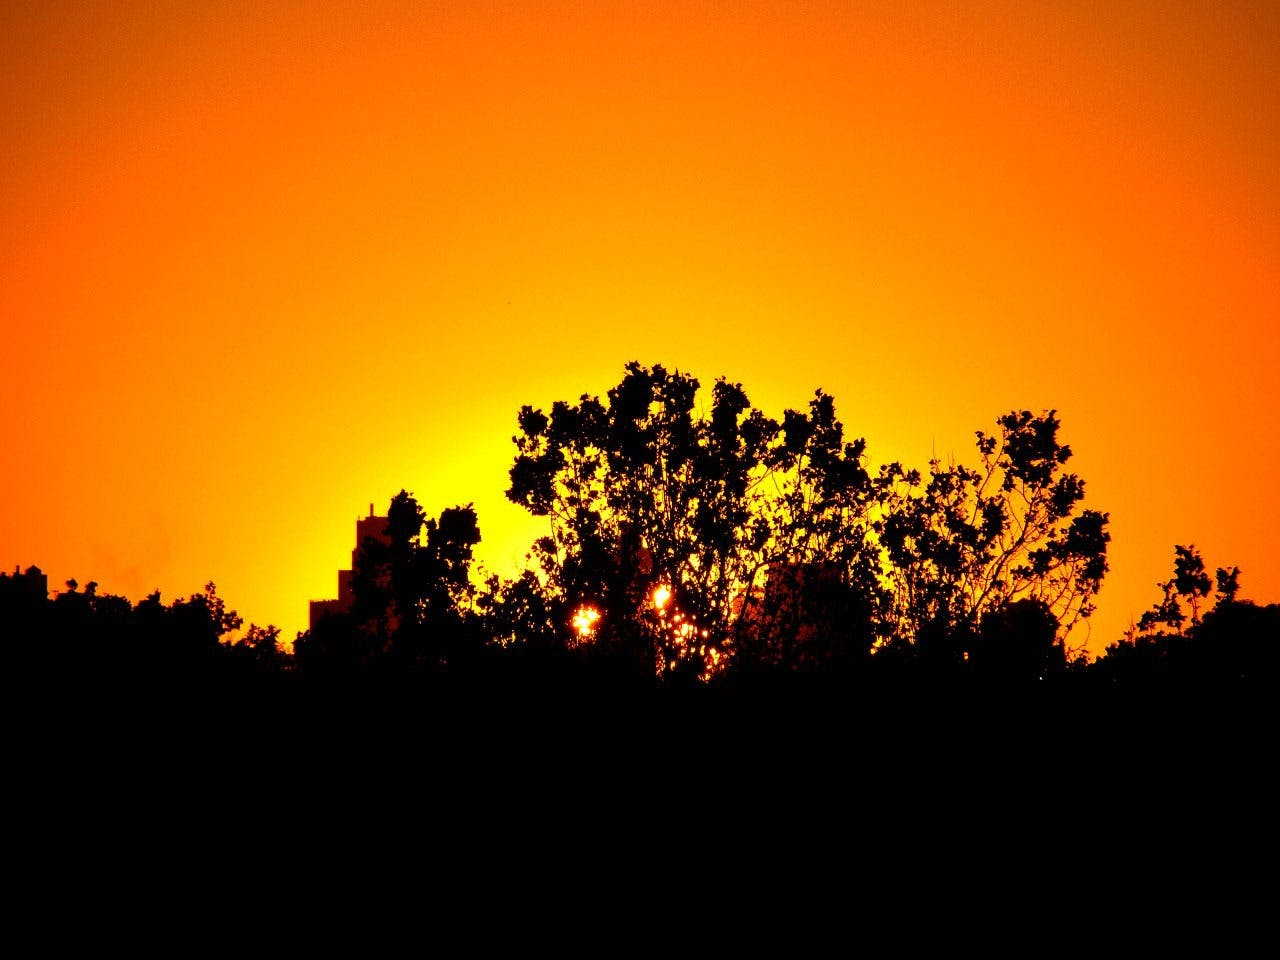 Free stock photo of sky, sunset, trees, silhouette